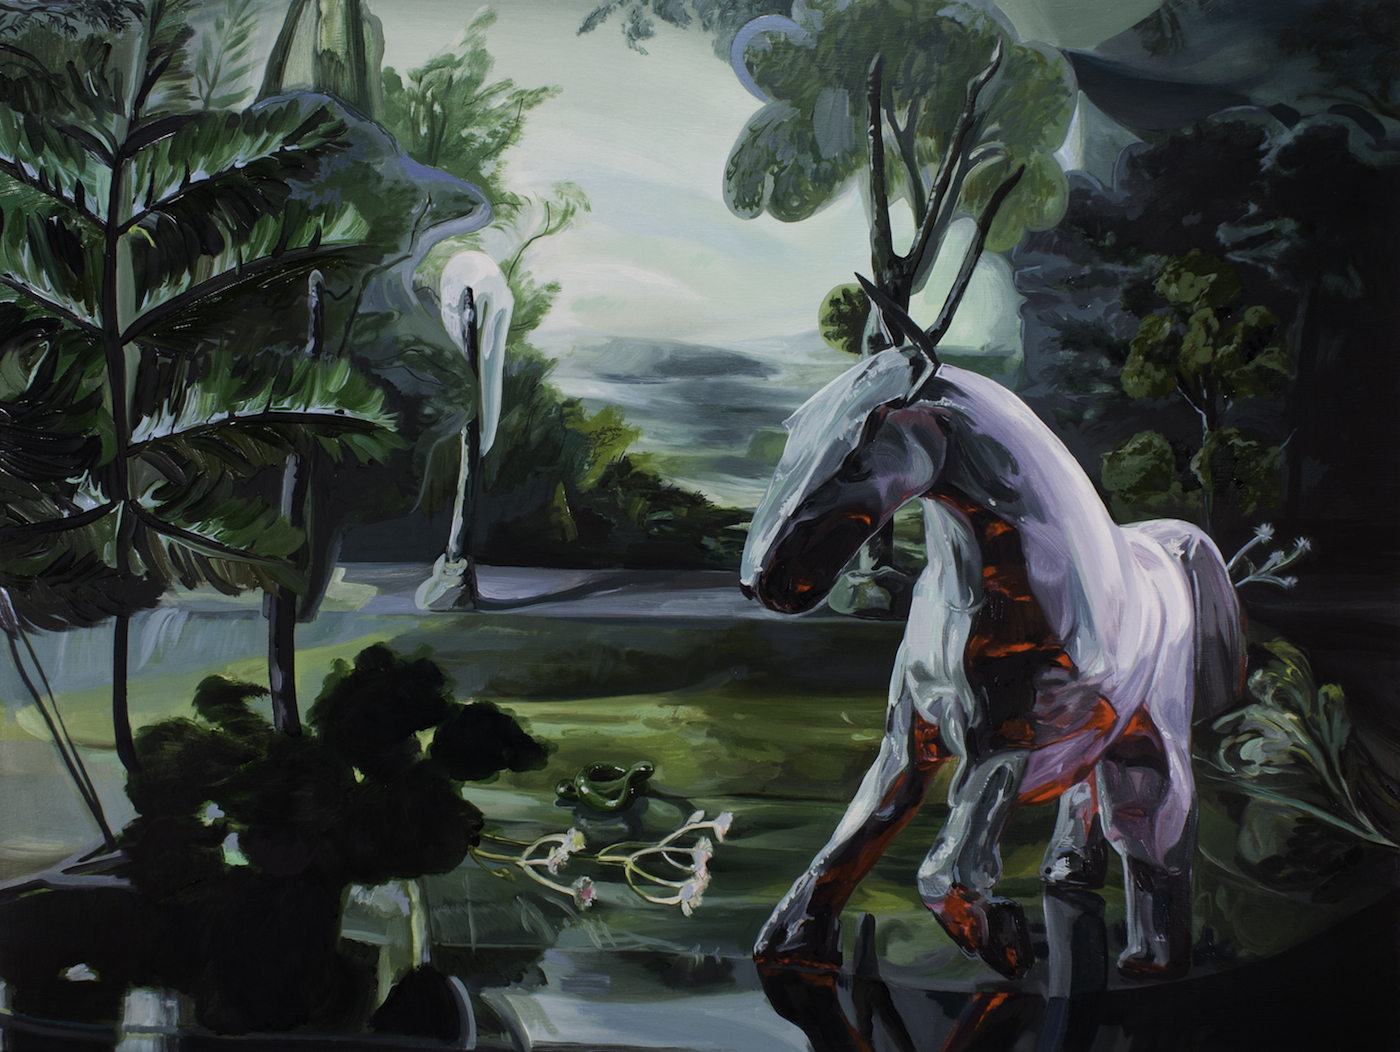 Emma Webster Pale Horse, 2019 Oil on canvas 30 h x 40 w in 76.20 h x 101.60 w cm